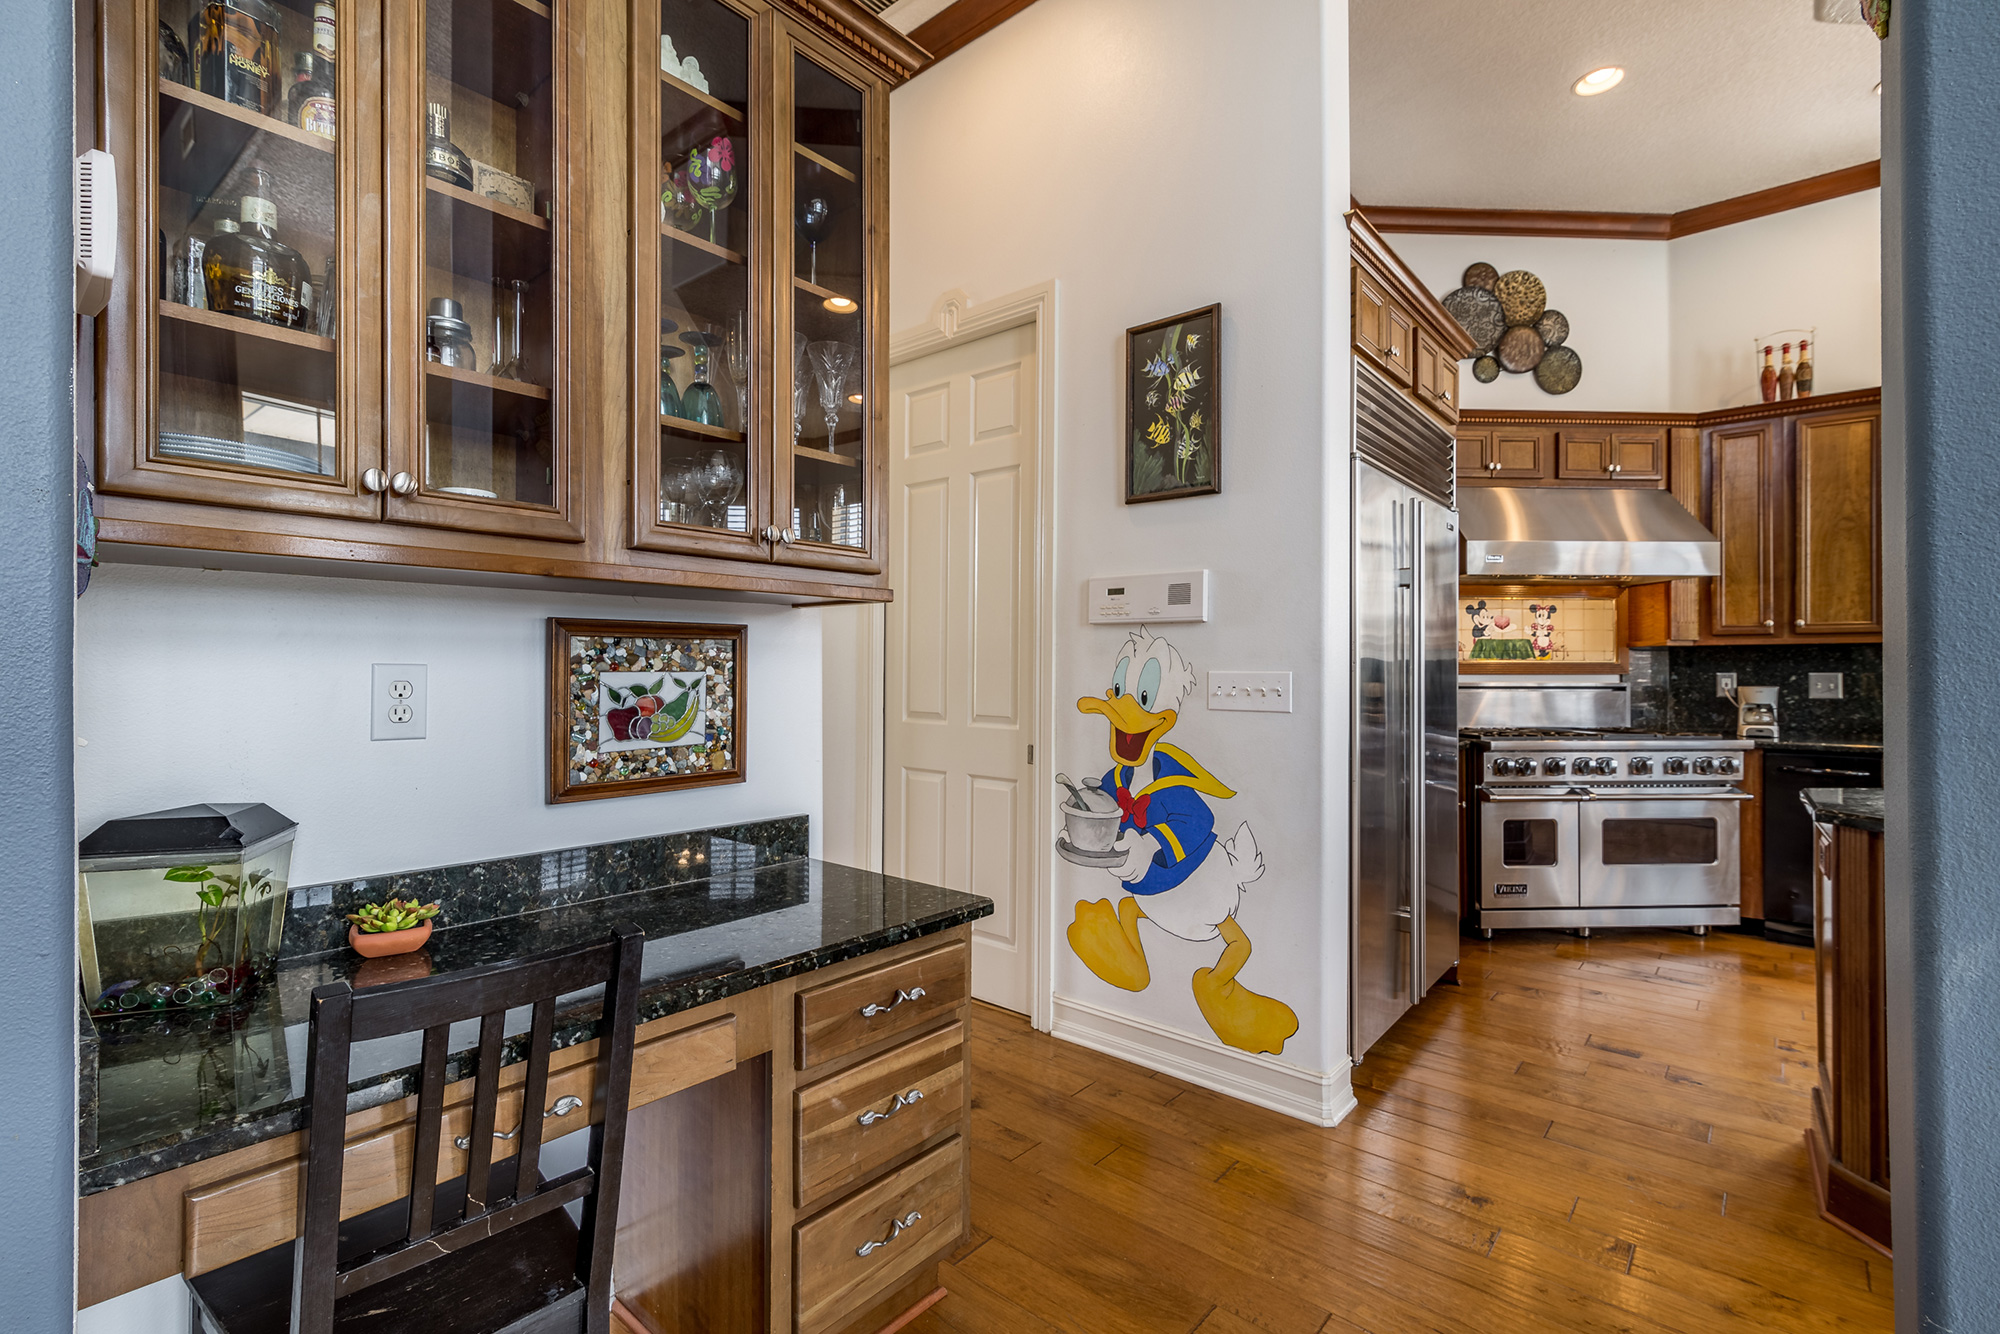 Disney Lovers' Florida House with Two Mickey Mouse–Shaped Pools Hits the Market for $850K disney-house-donald-duck-kitchen